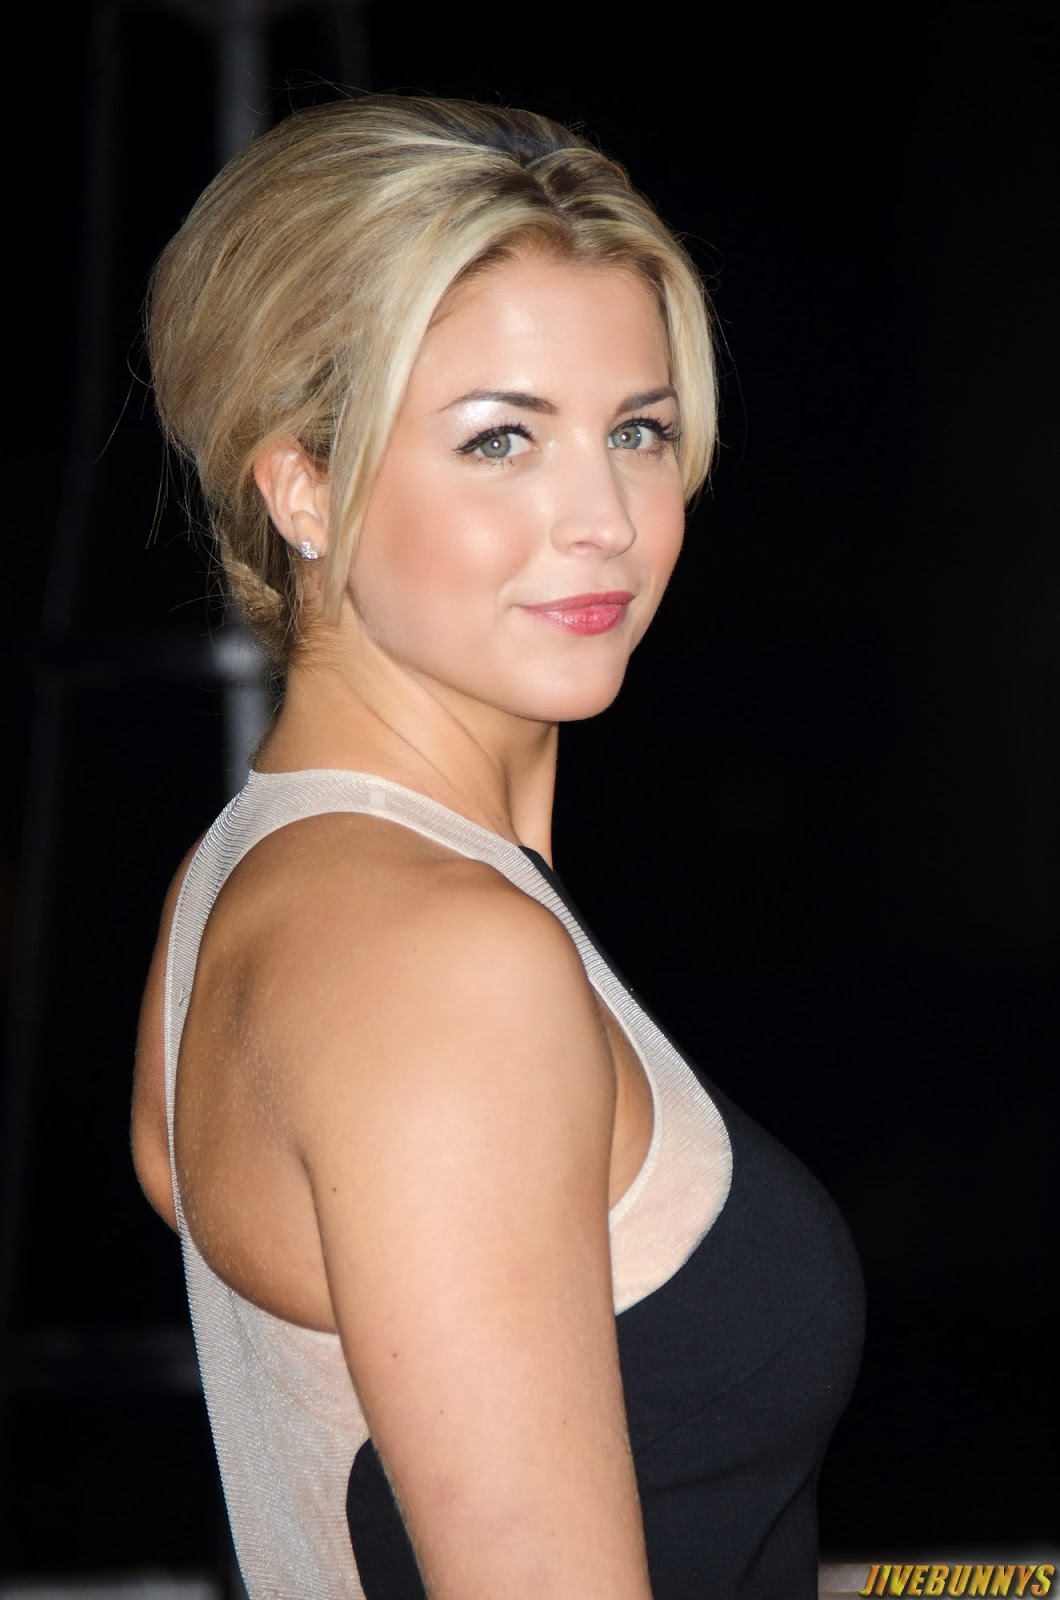 actress picture gallery gemma - photo #16